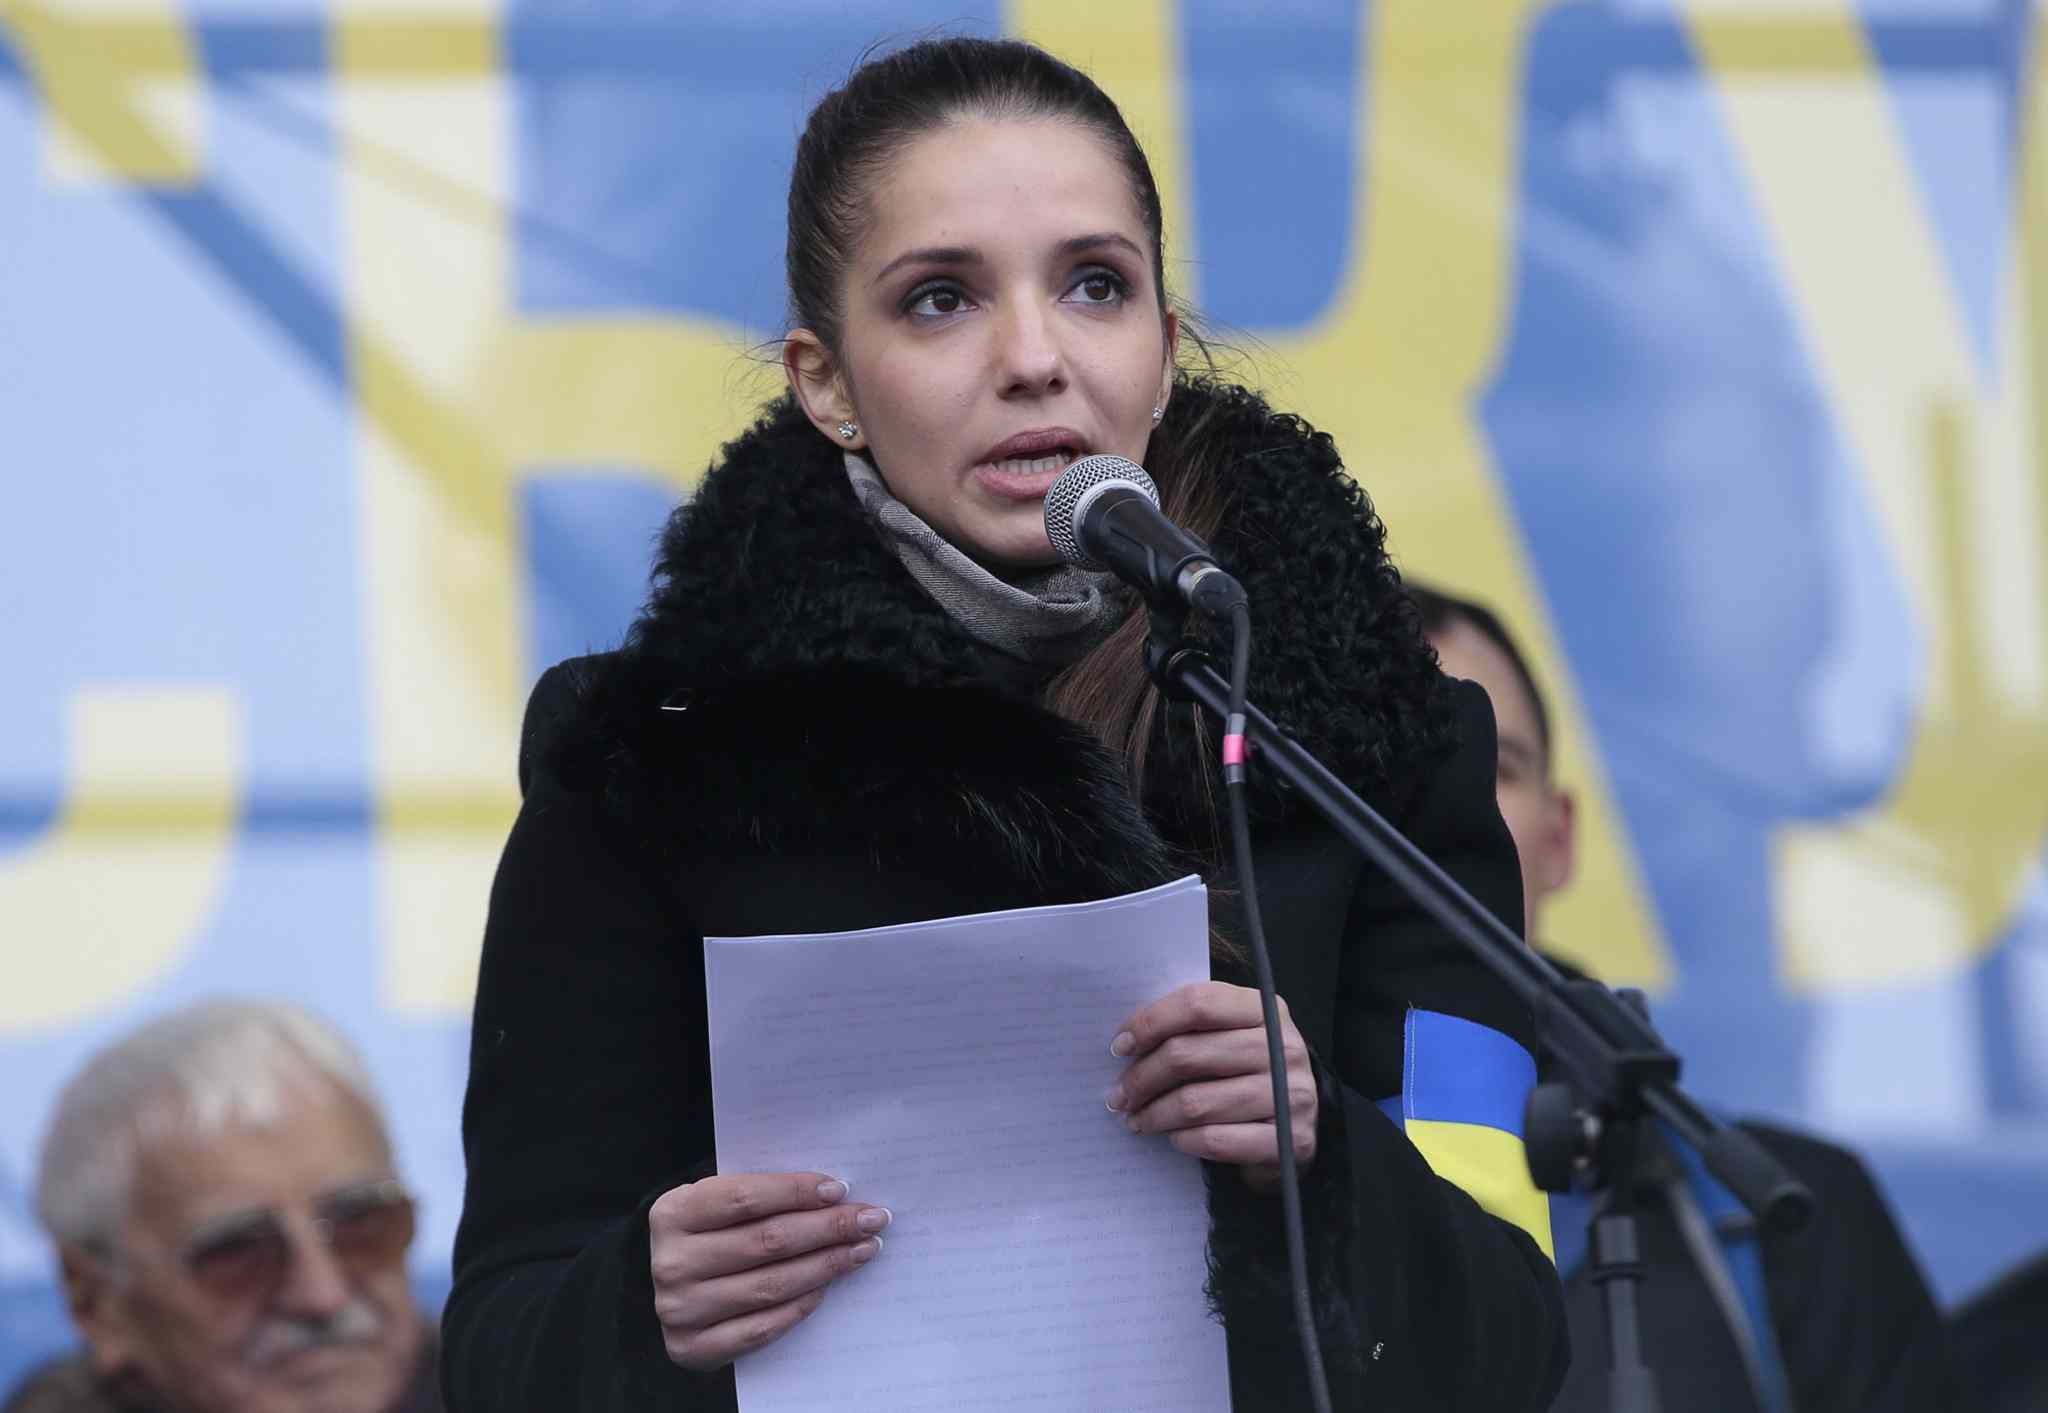 Eugenia Tymoshenko, daughter of jailed Ukrainian former prime minister Yulia Tymoshenko speaks to Pro-European Union activists during the rally. More than 200,000 angry Ukrainians occupied a central Kyiv square on Sunday, to denounce President Viktor Yanukovych's decision to turn away from Europe and align this ex-Soviet republic with Russia, as massive protests continued for a third week.